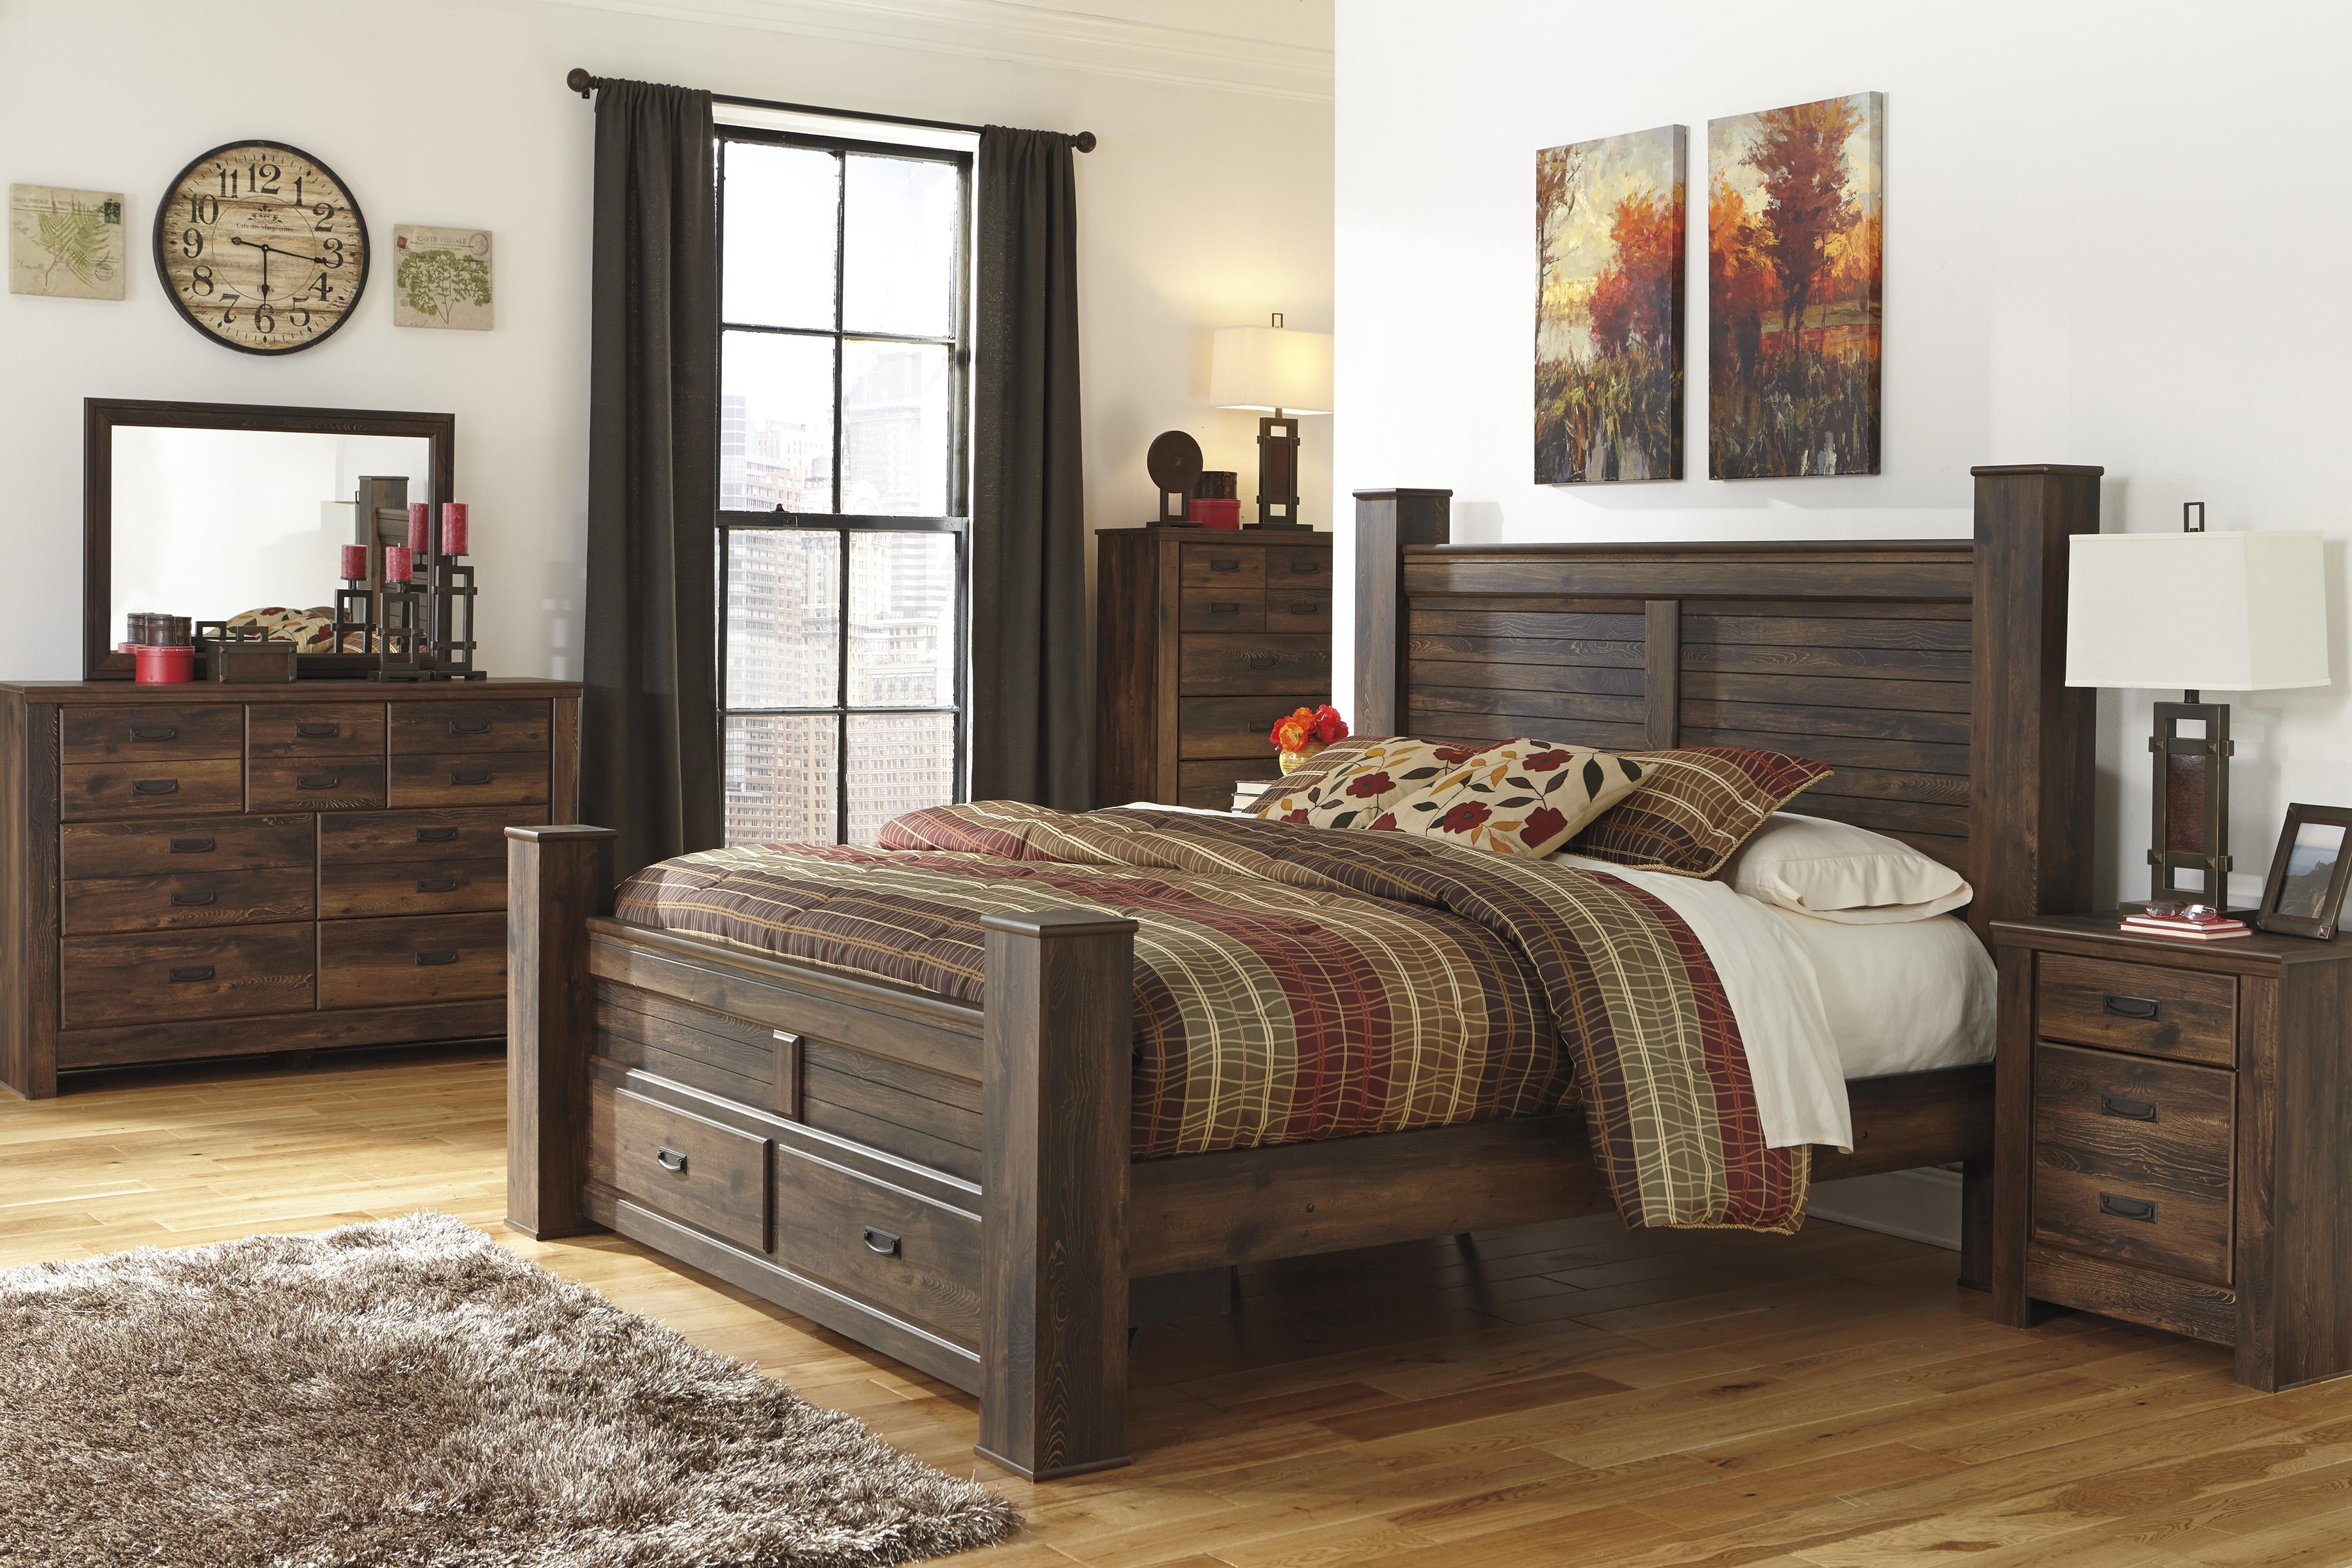 Signature Design by Ashley Quinden King Bedroom Group - Item Number: B246 K Bedroom Group 3